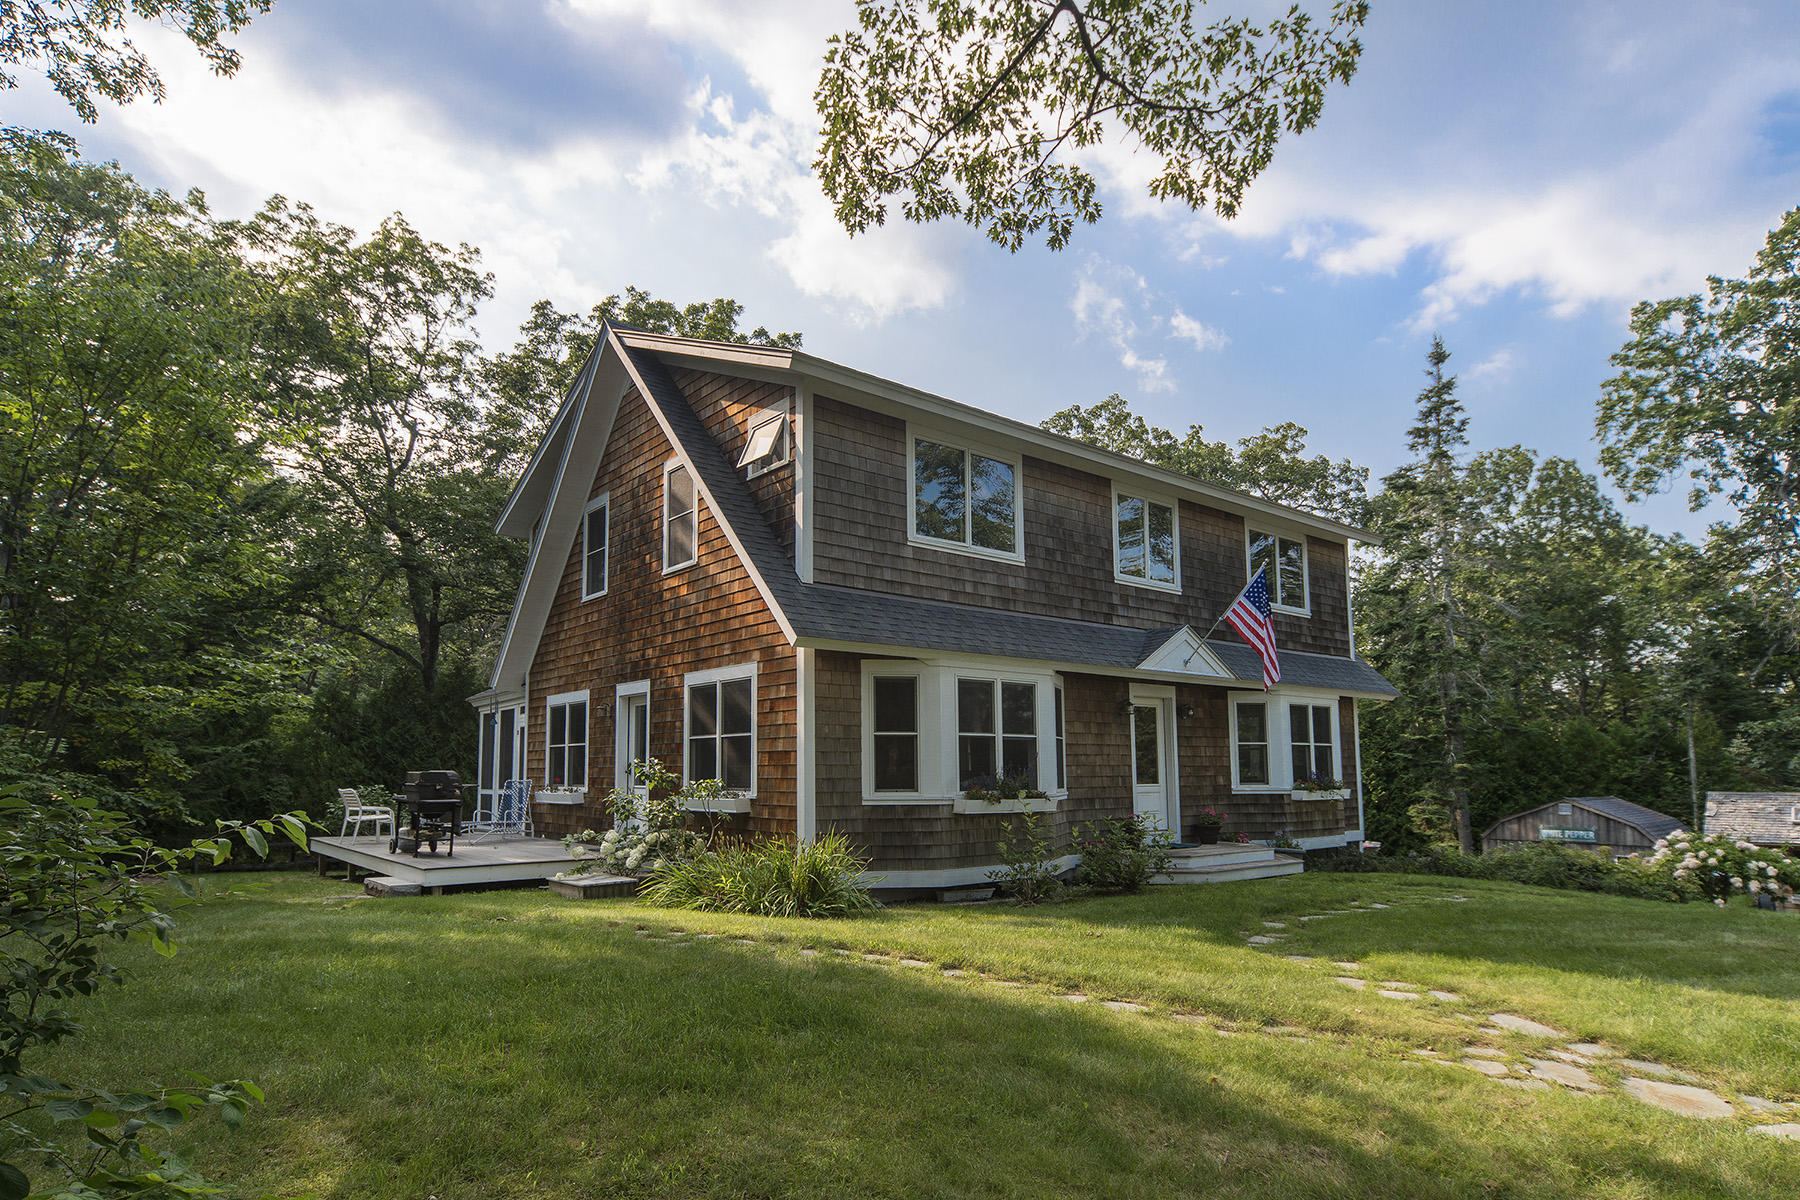 Single Family Home for Sale at 11 Jocelyn Road Scarborough, Maine 04074 United States